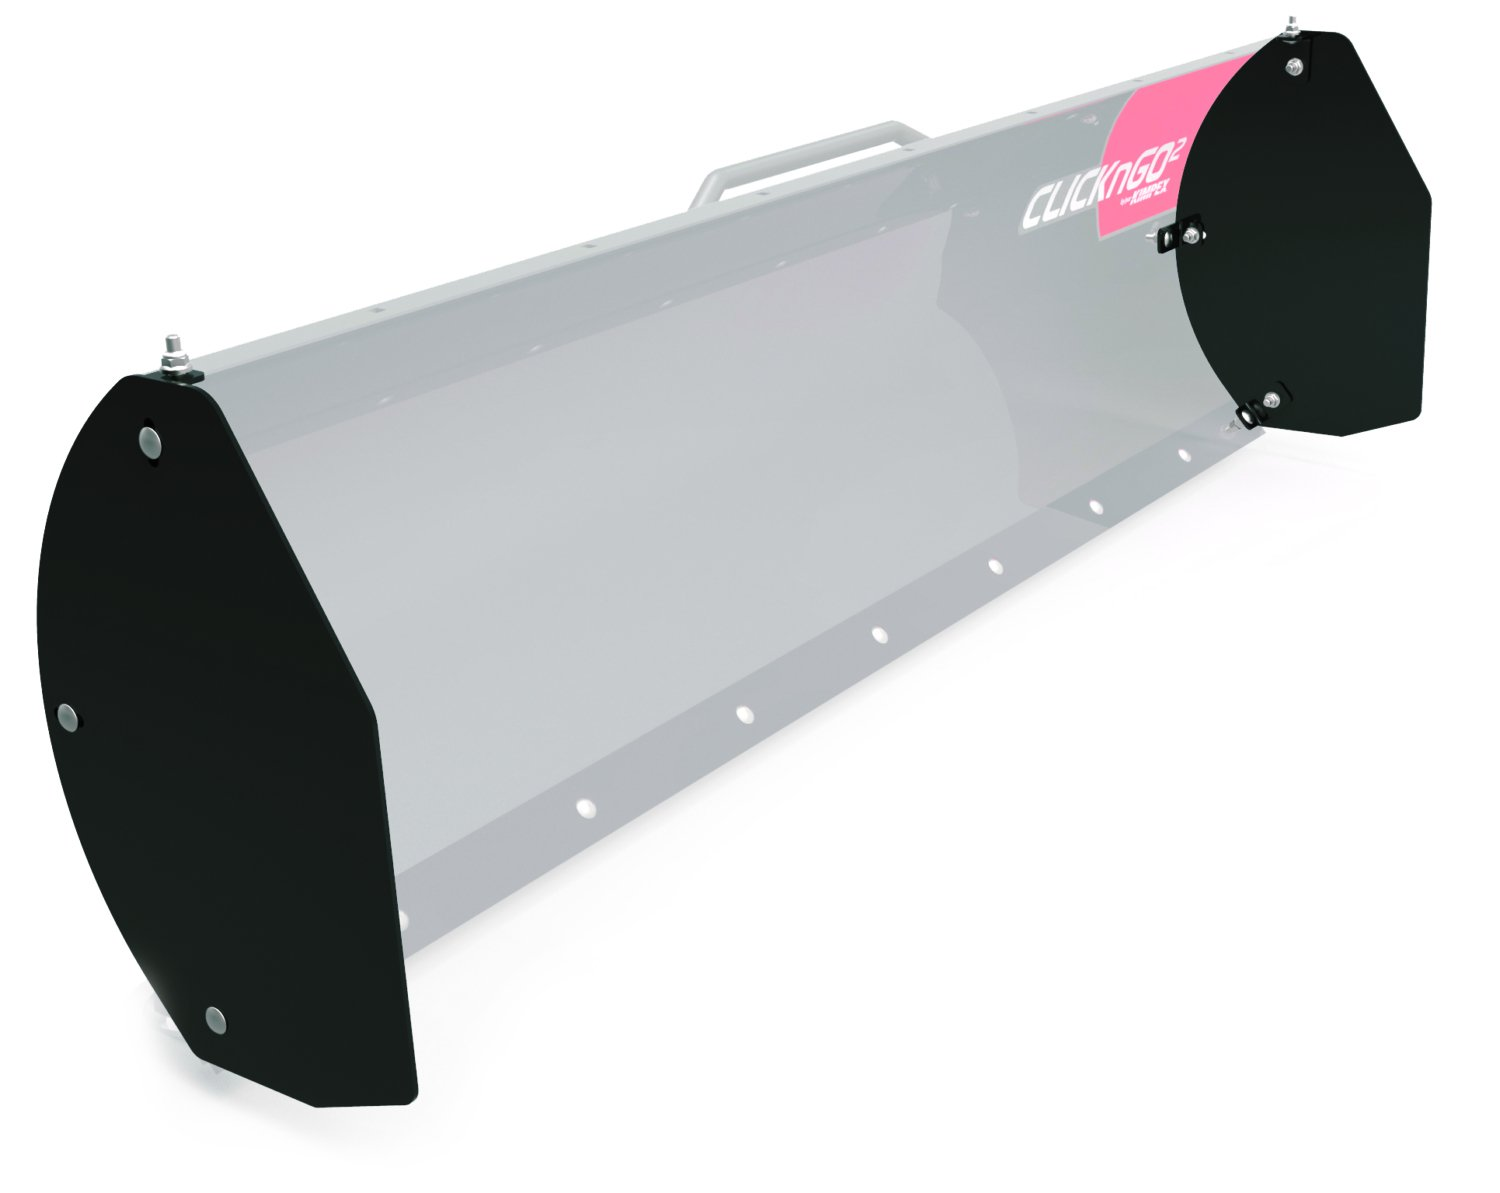 CLICK nGO Plow Fenders for CNG 1, 1.5 & 2 Plow